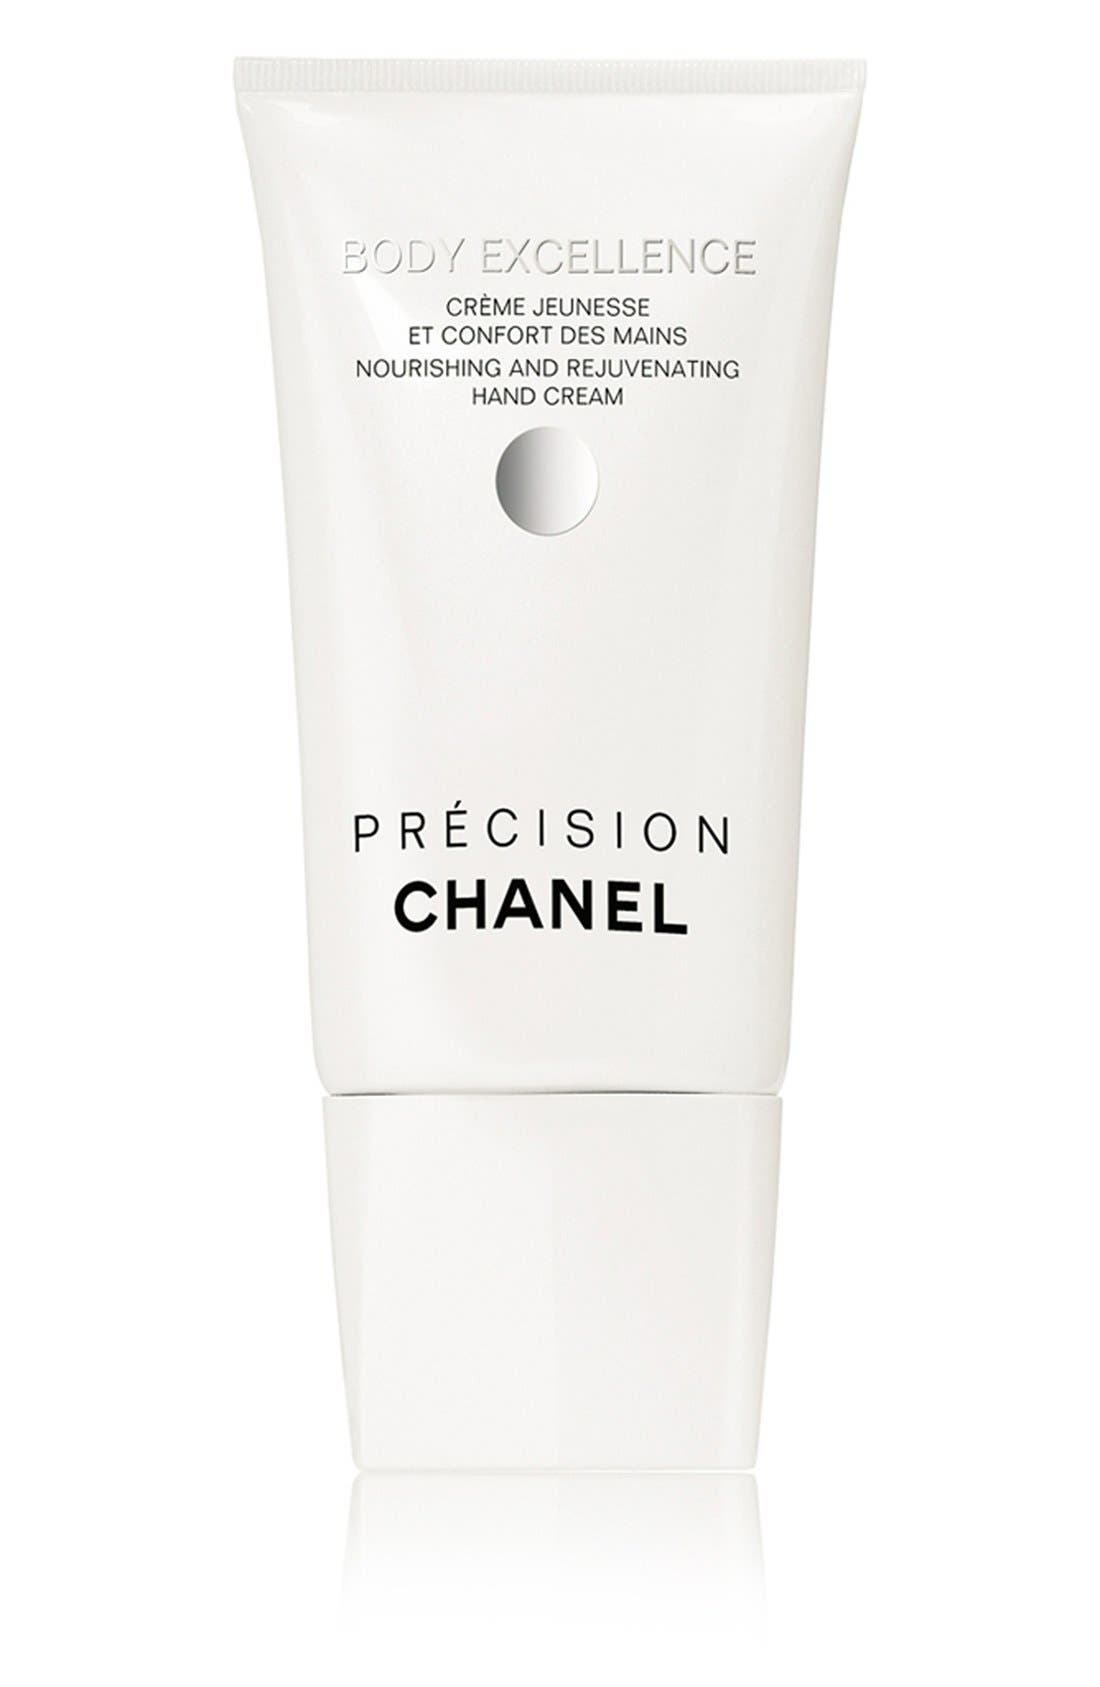 CHANEL BODY EXCELLENCE 